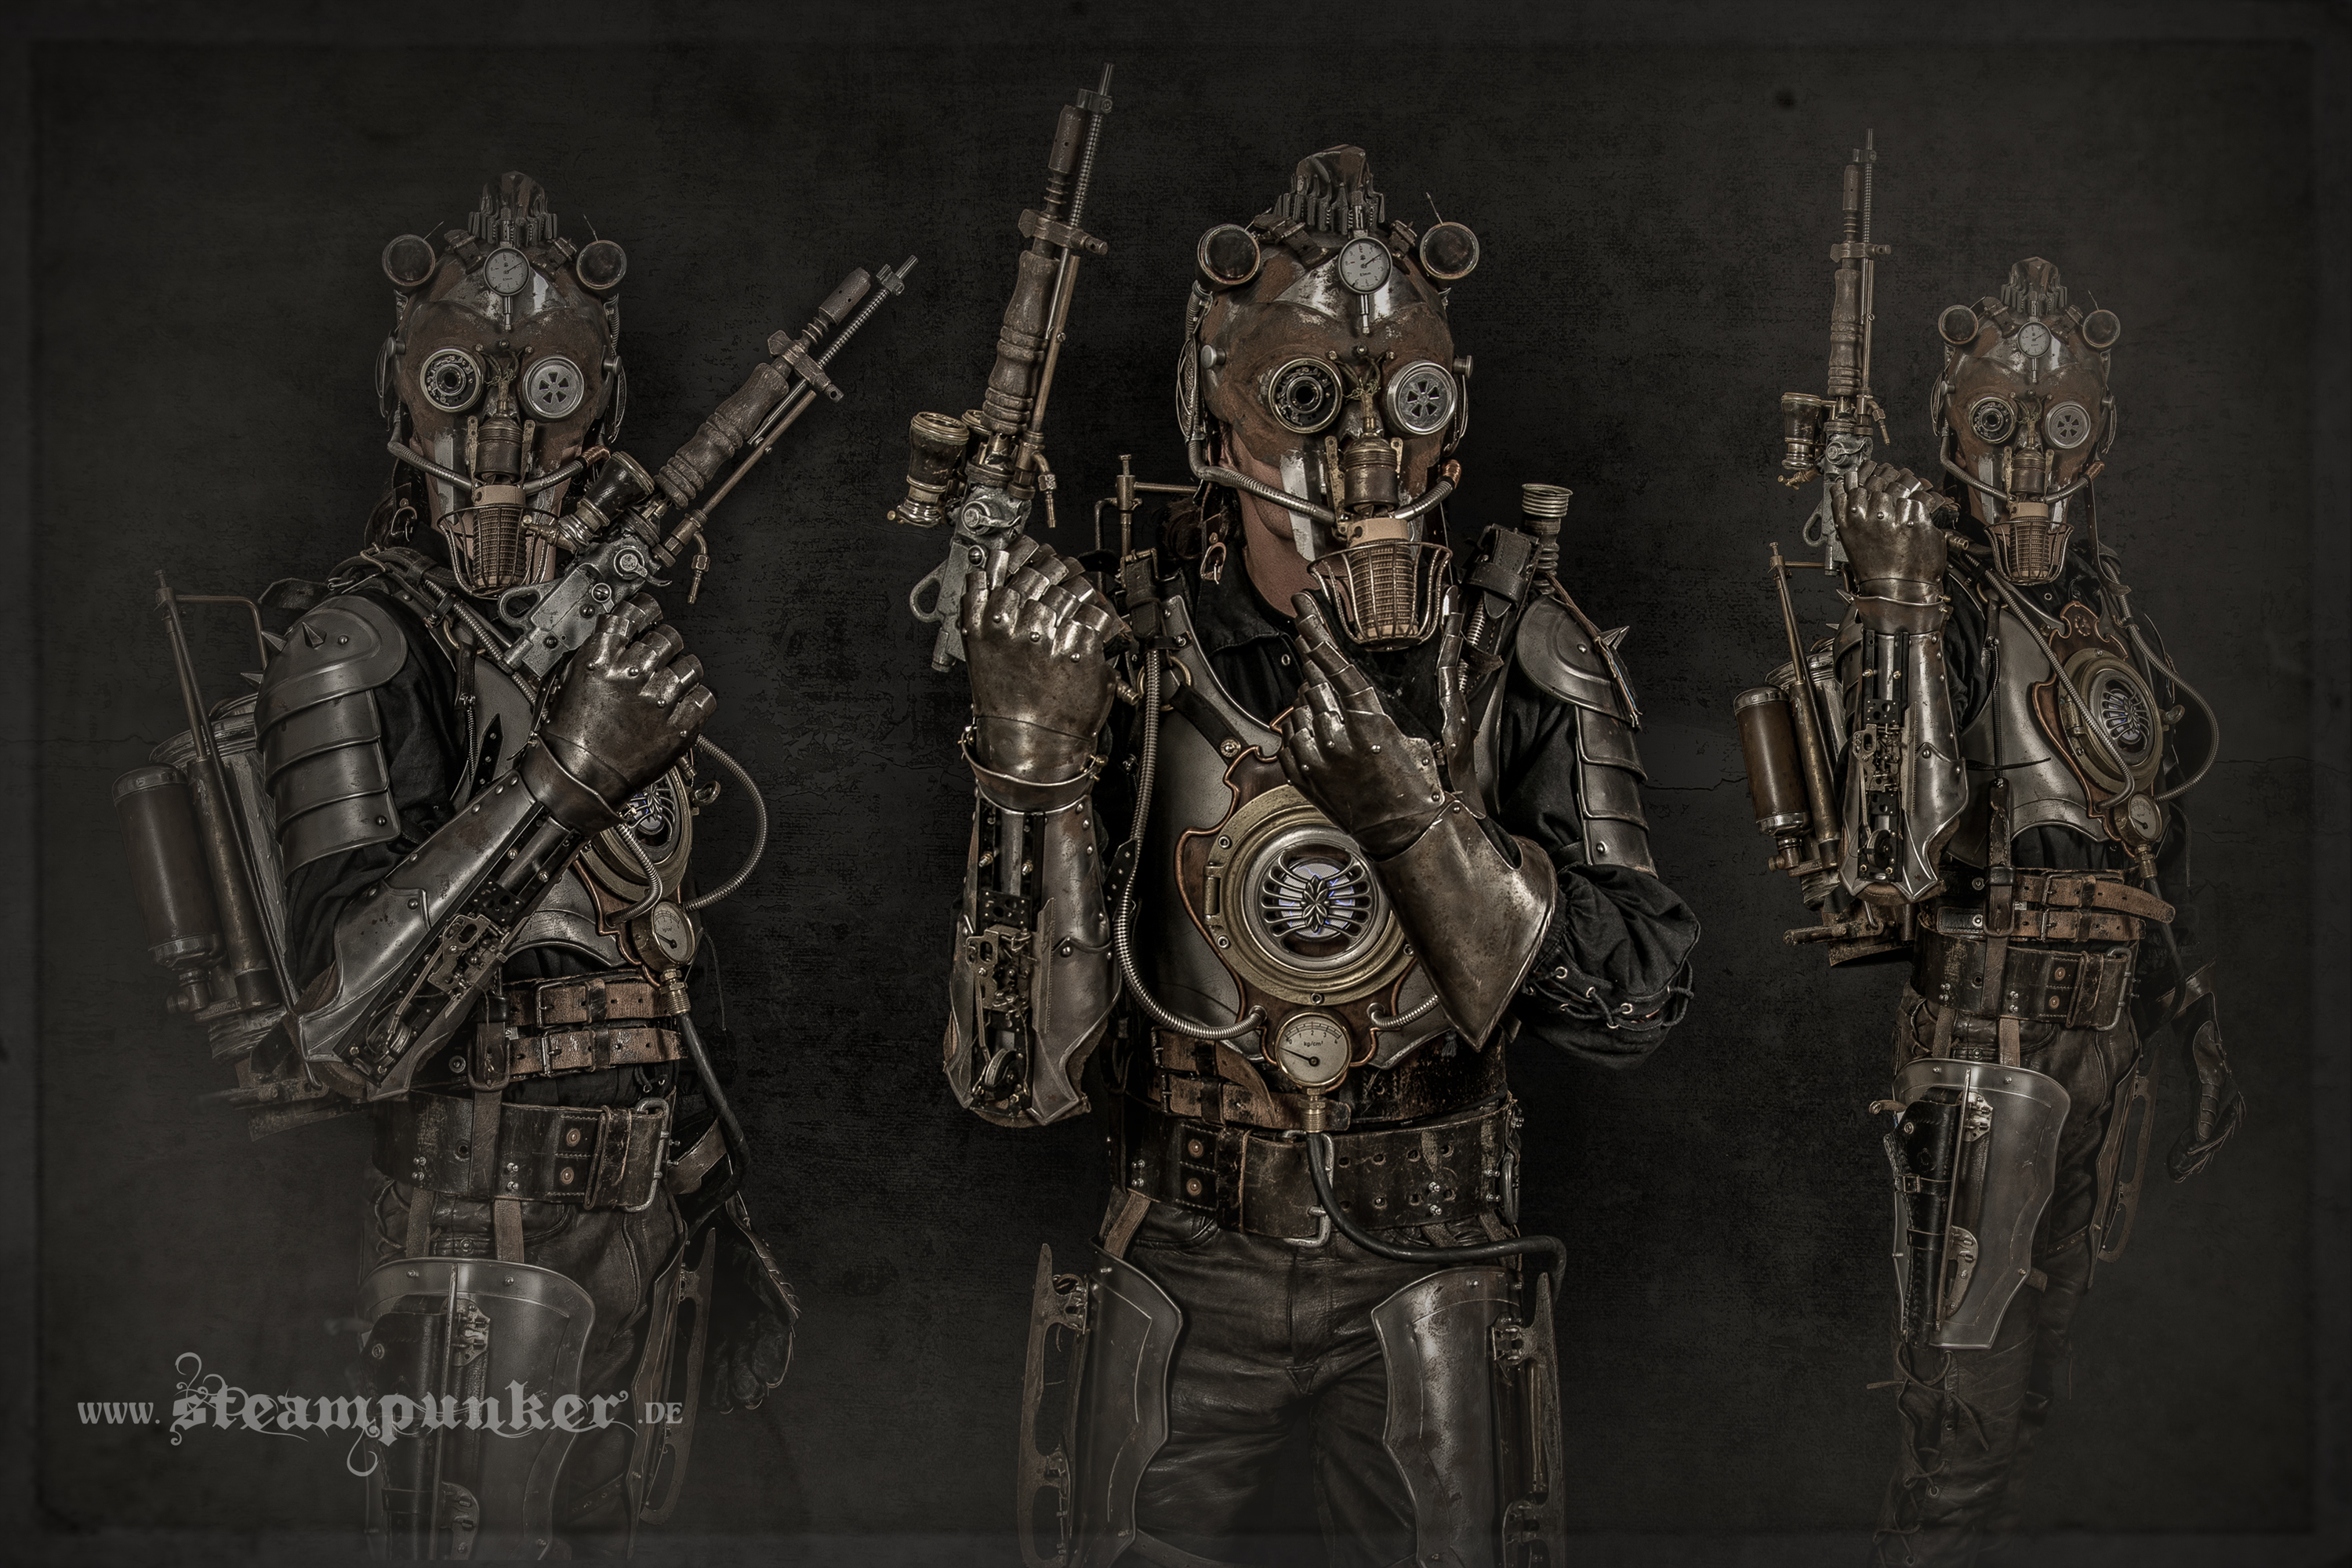 Steampunk Warrior - Rüstung